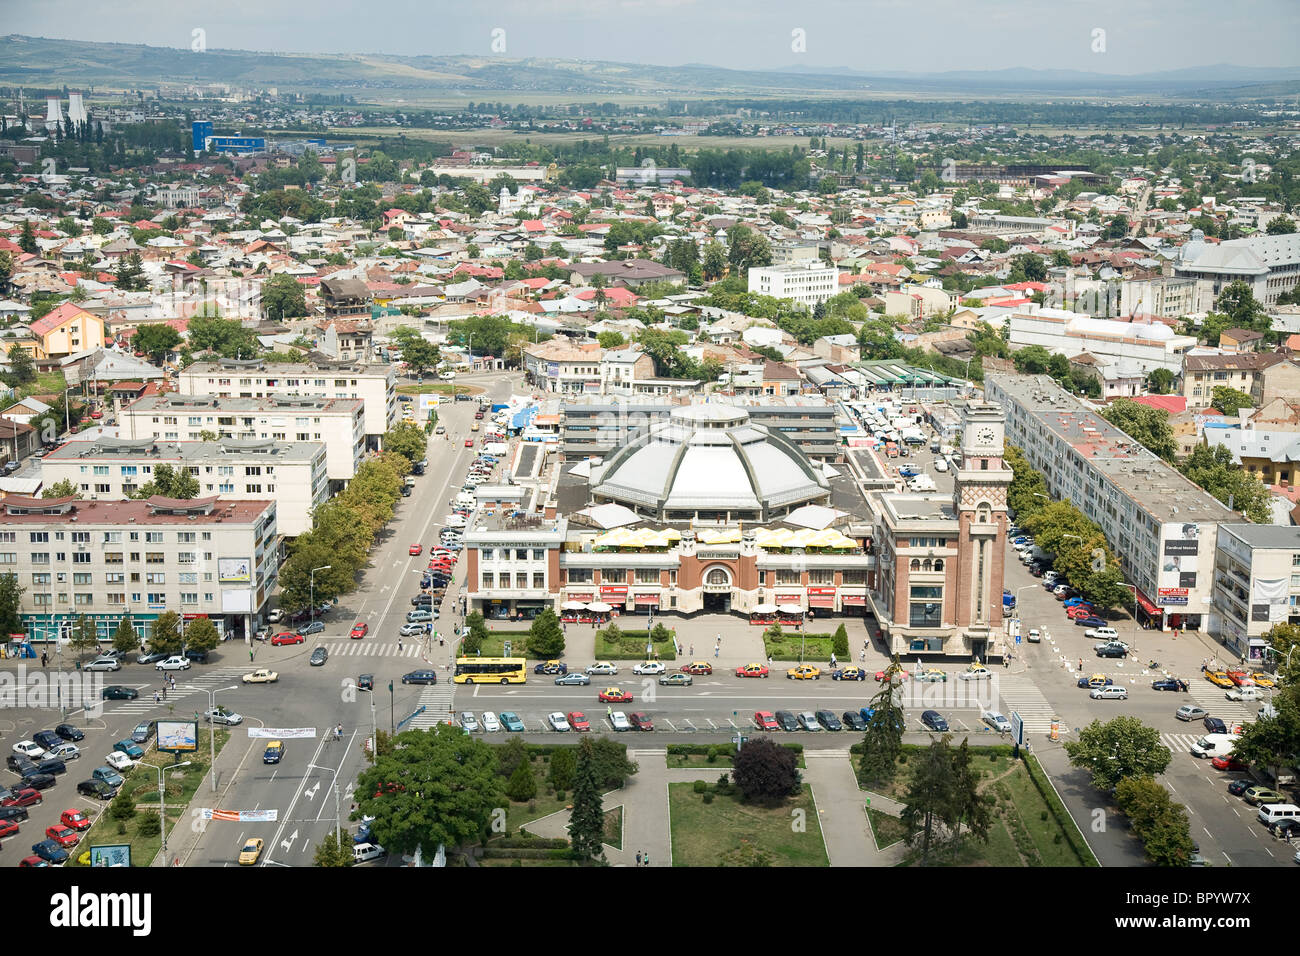 Aerial photograph of Bucharest Romania - Stock Image